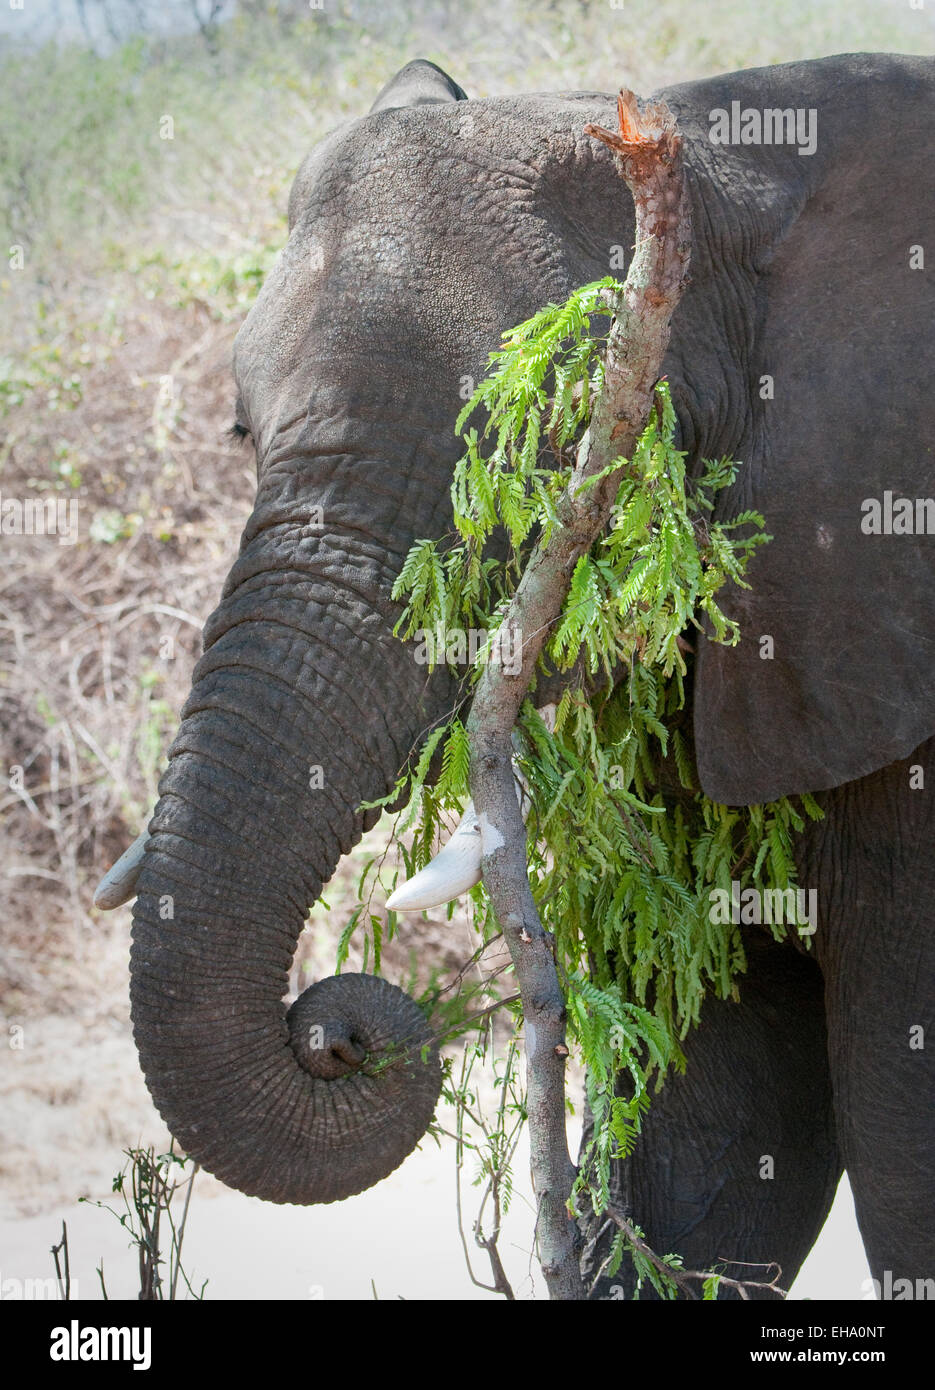 Close up of African elephant with limb of tree it broke off to eat greenery - Stock Image